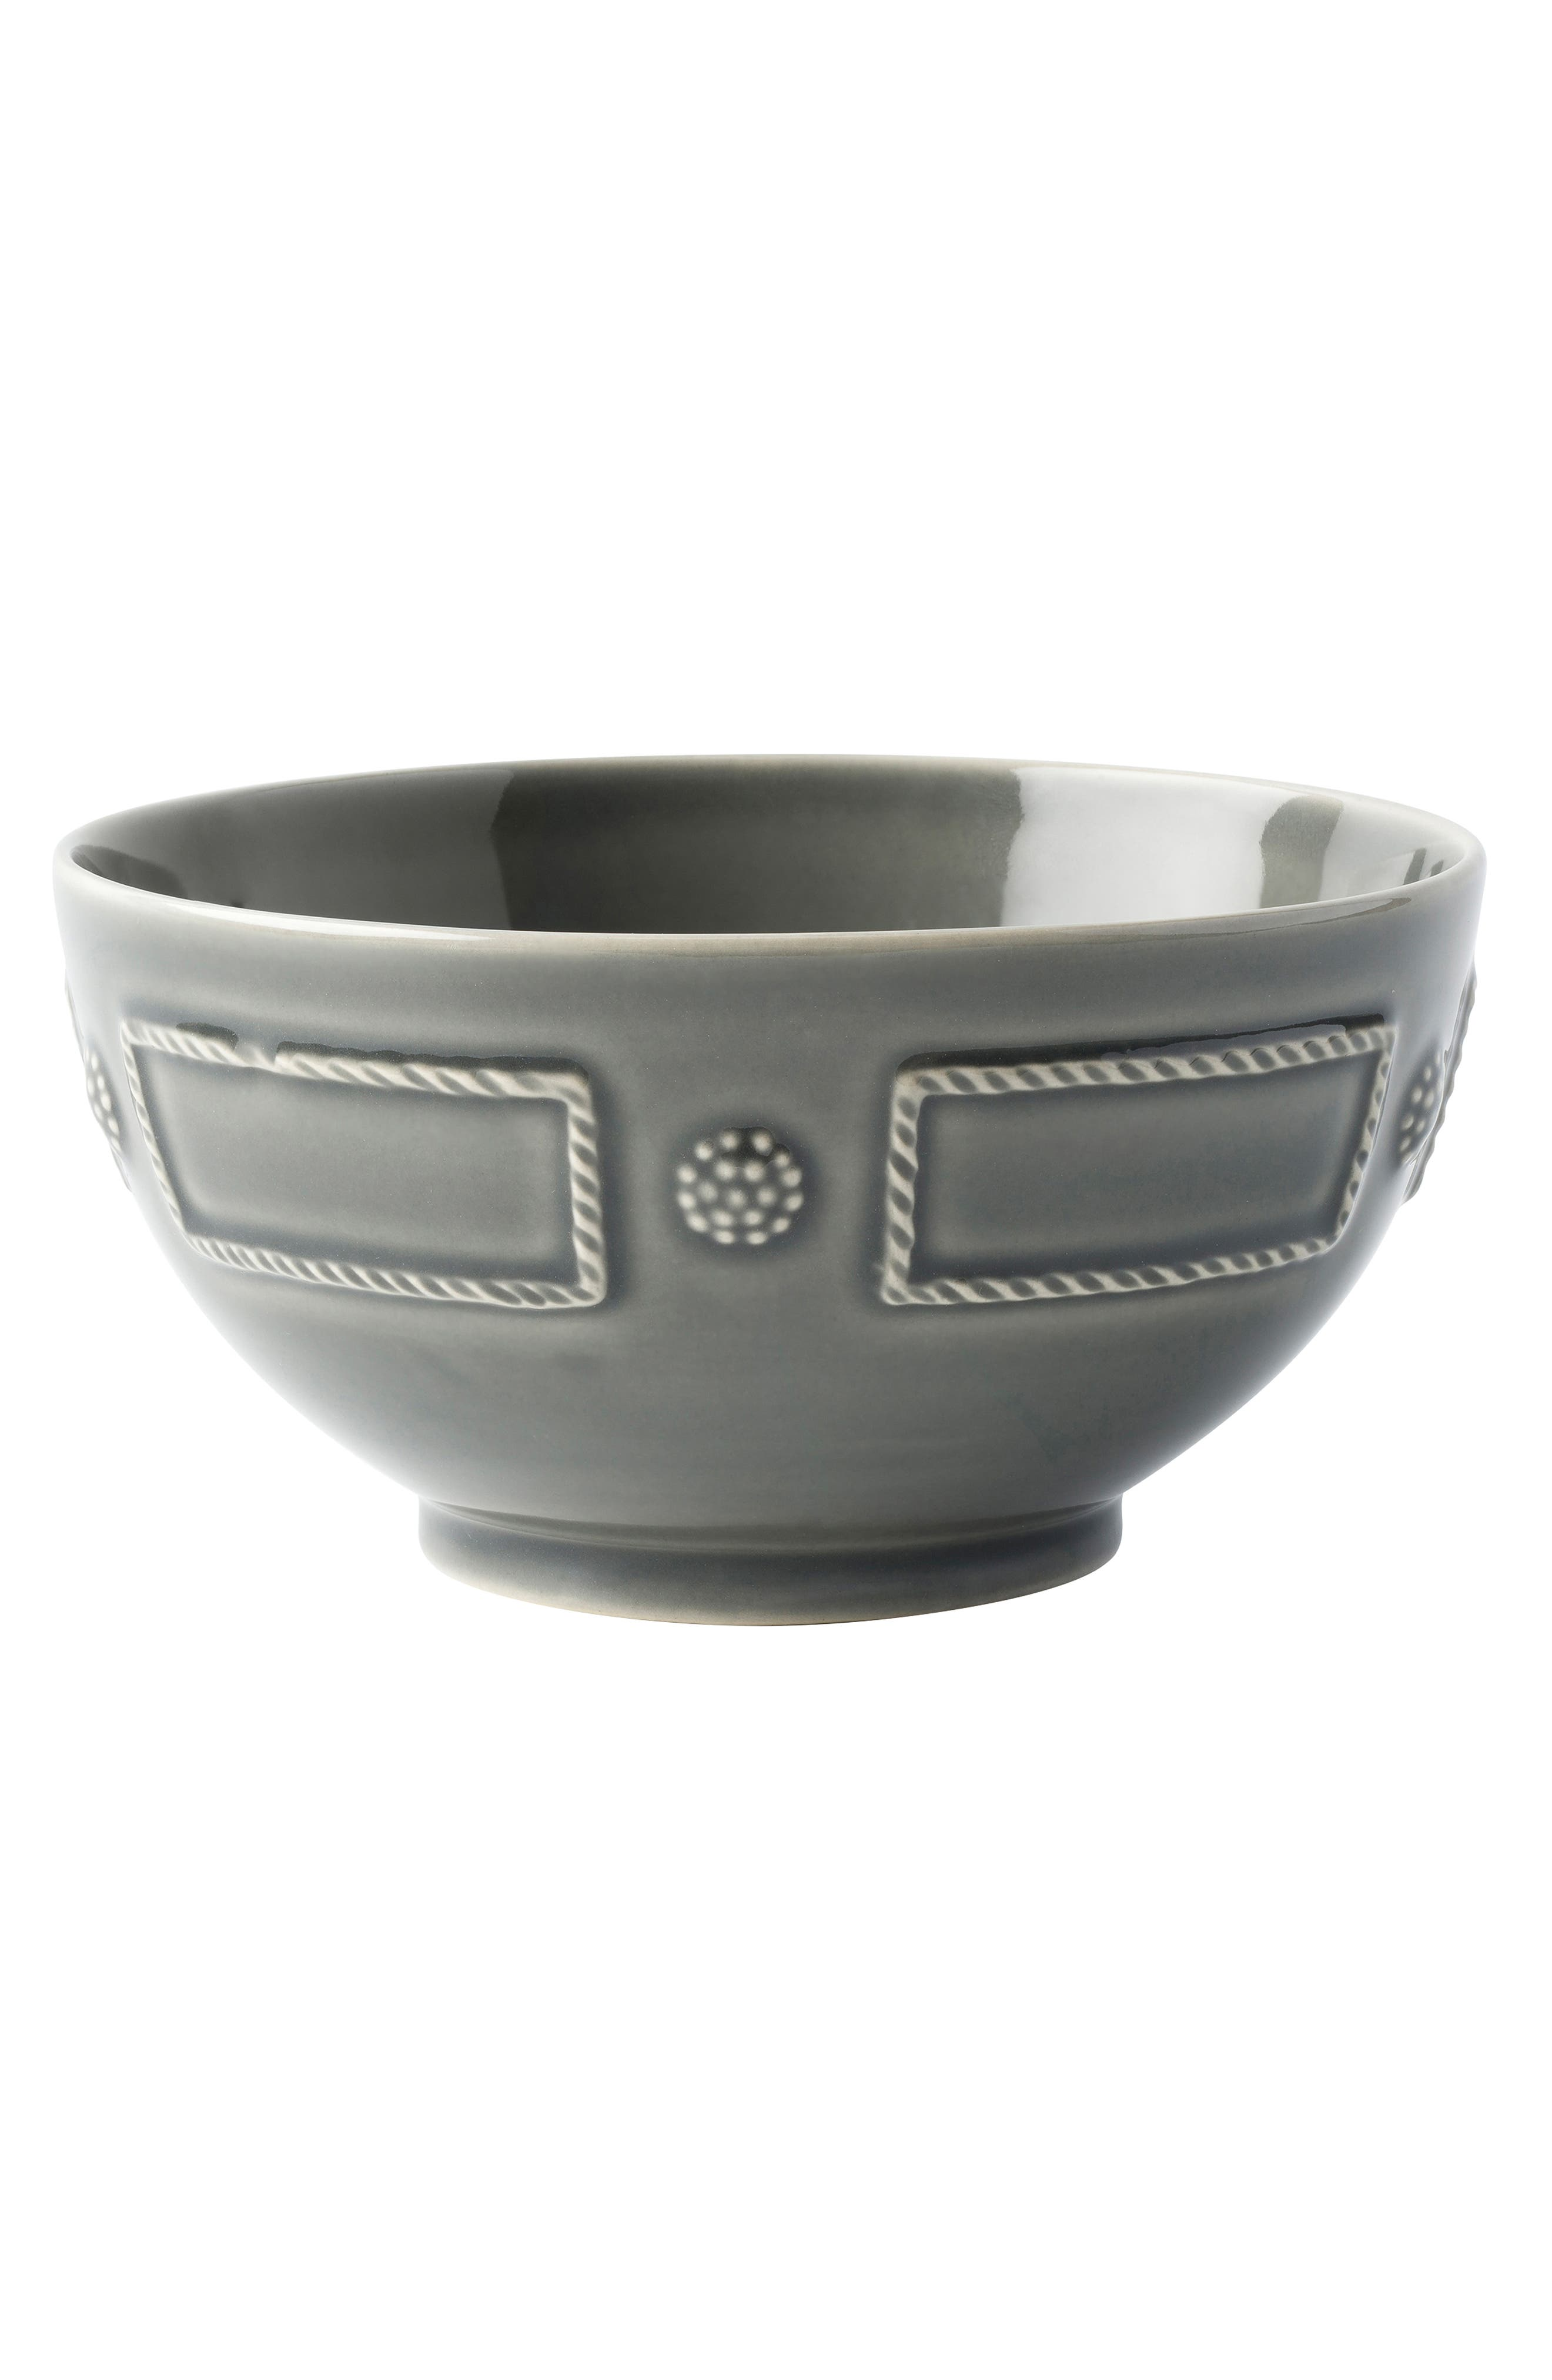 Berry & Thread French Panel Ceramic Cereal Bowl,                         Main,                         color, STONE GREY